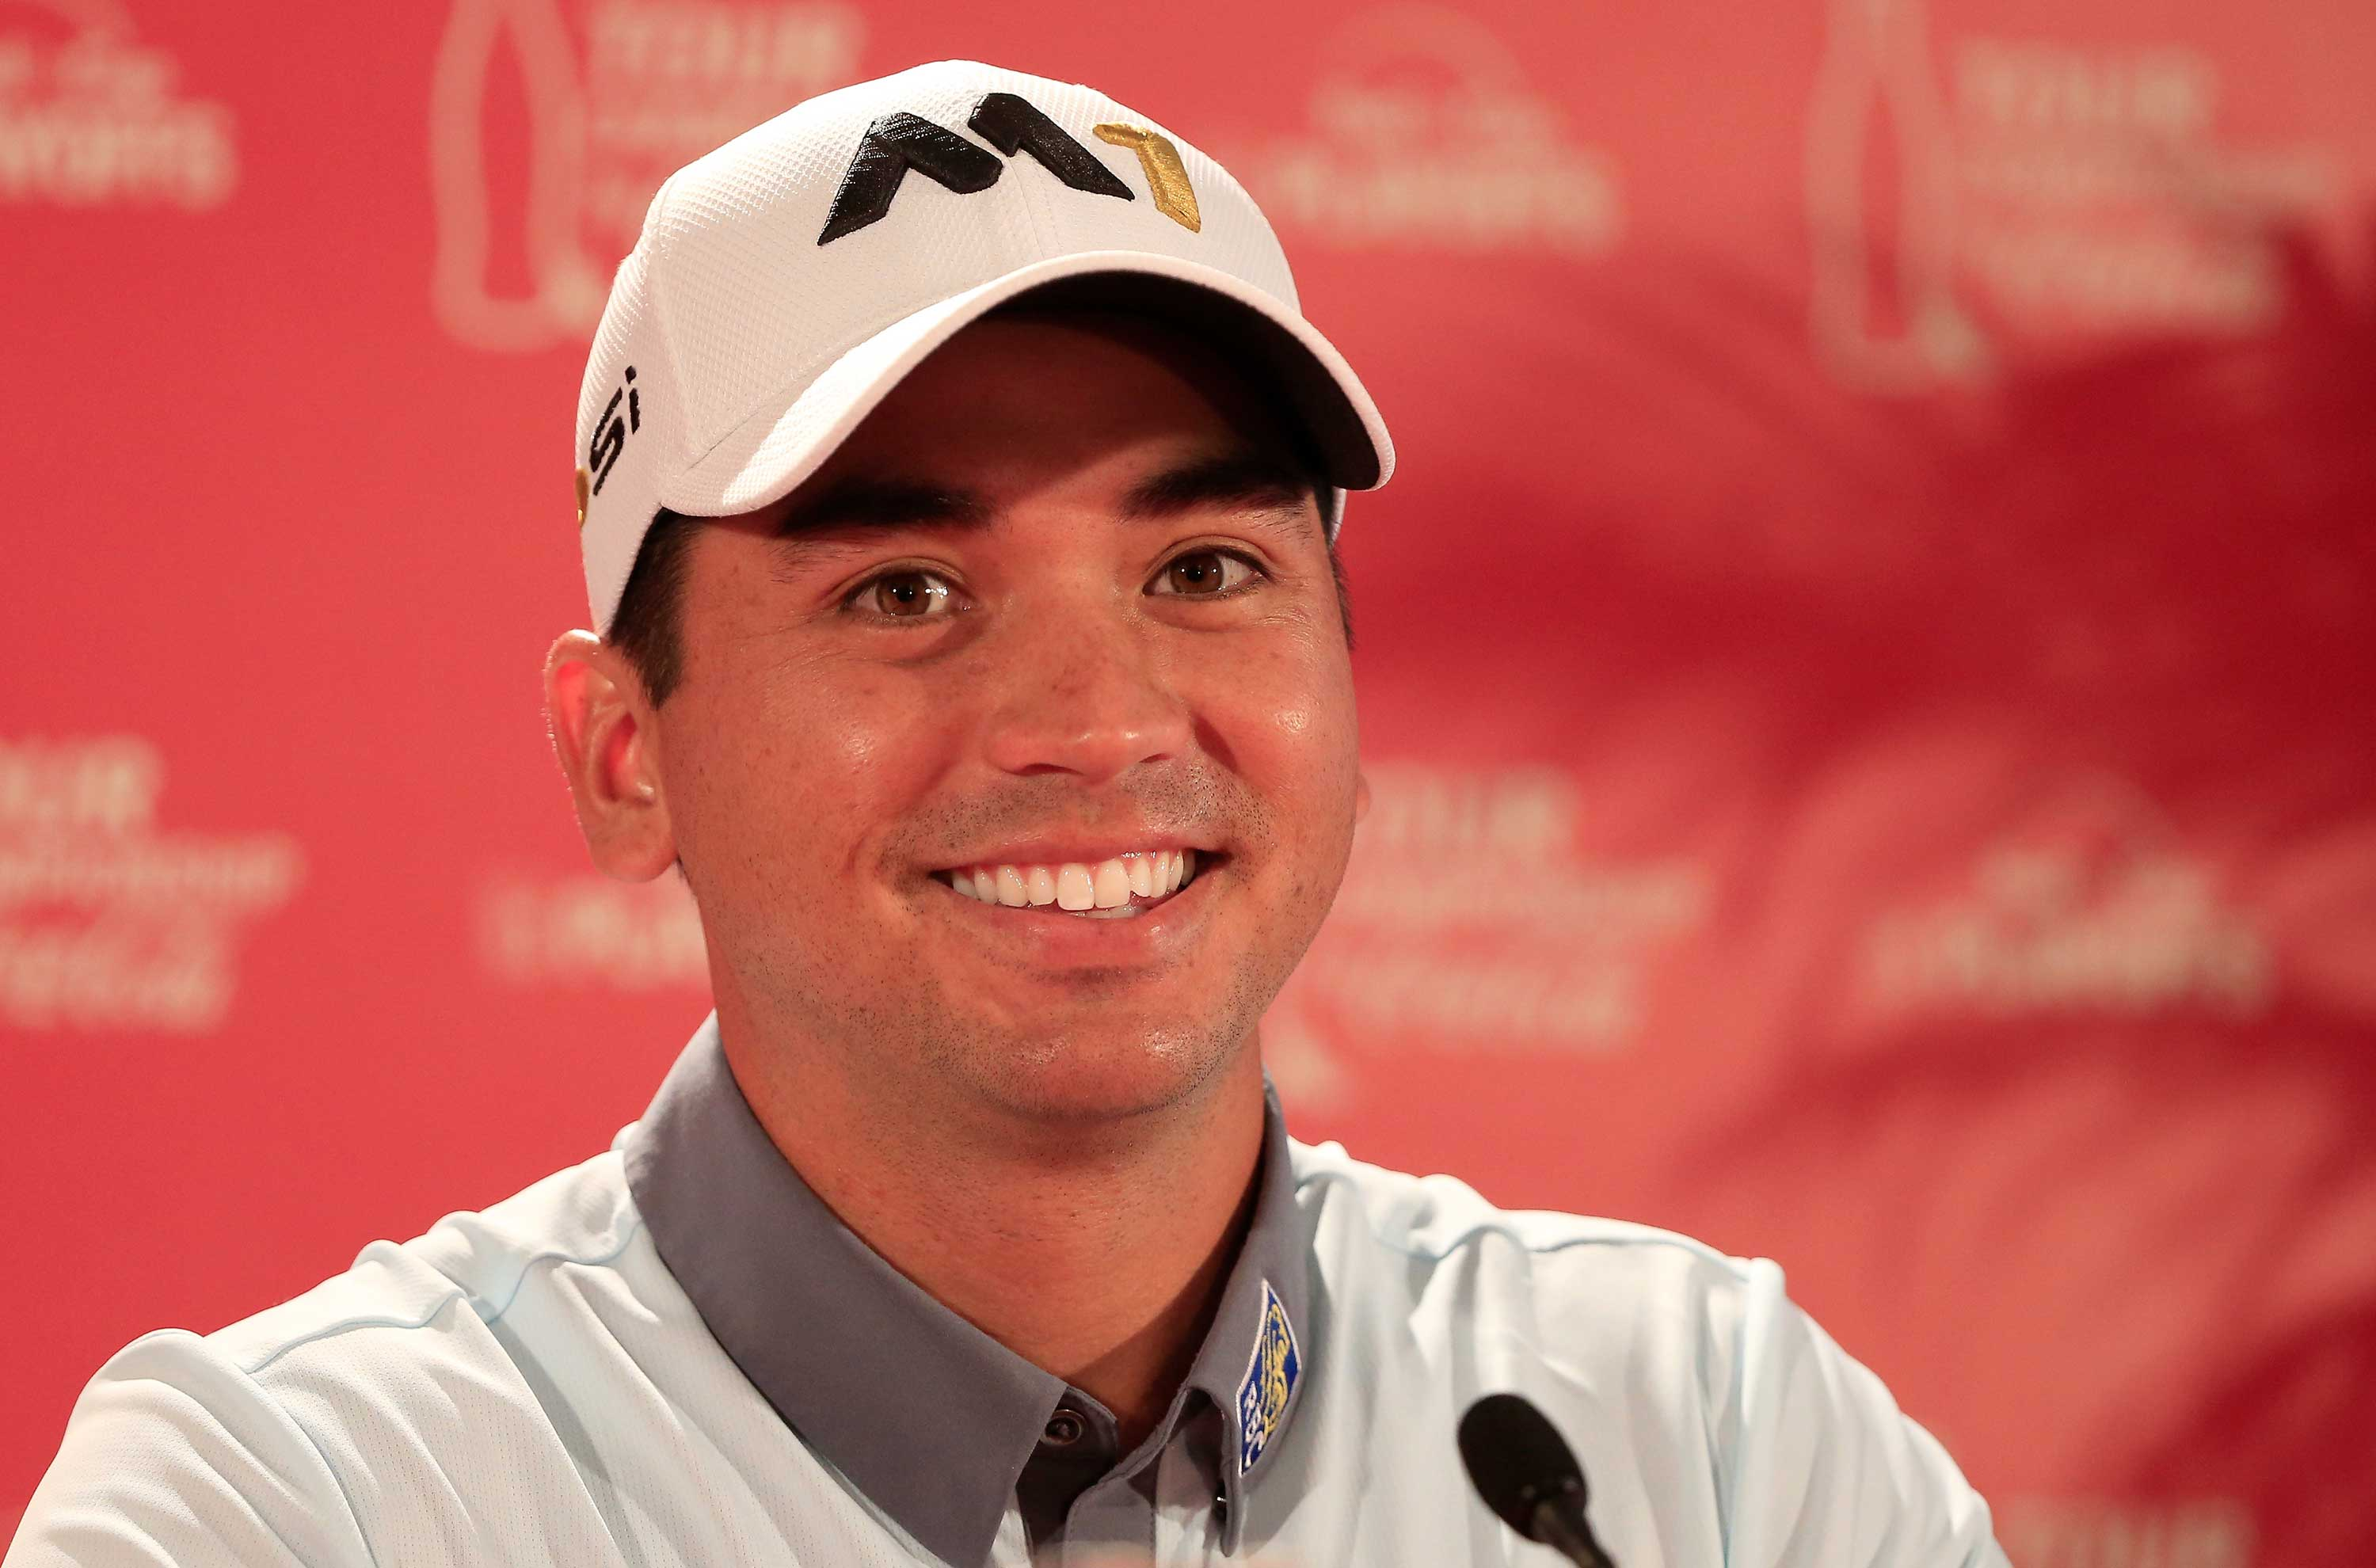 World number one Jason Day leads the FedEx Cup heading into the final event (Photo: Getty Images)